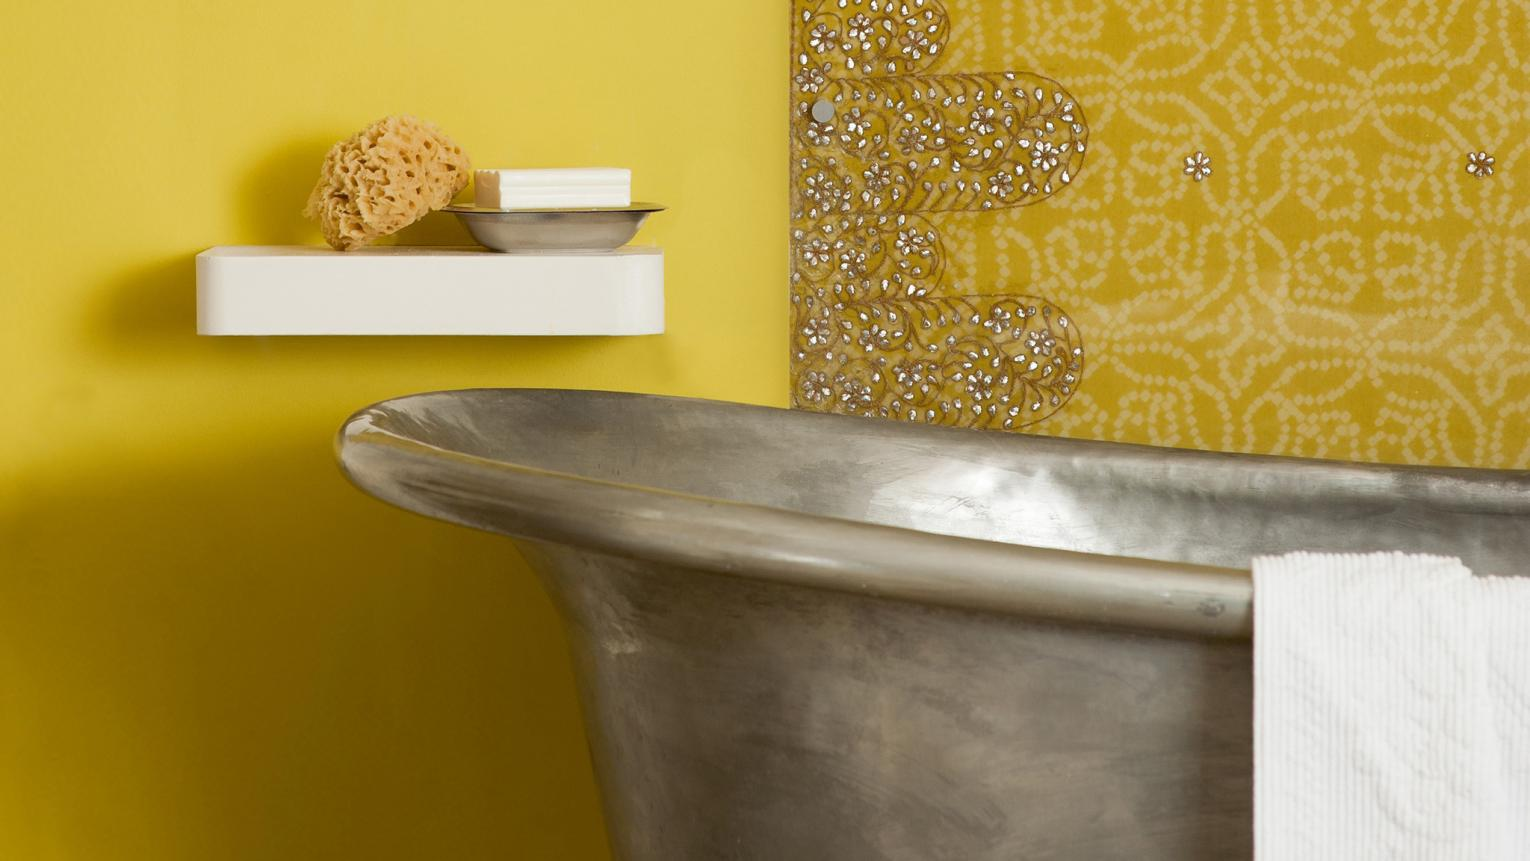 Bright yellow makes a windowless bathroom seem light